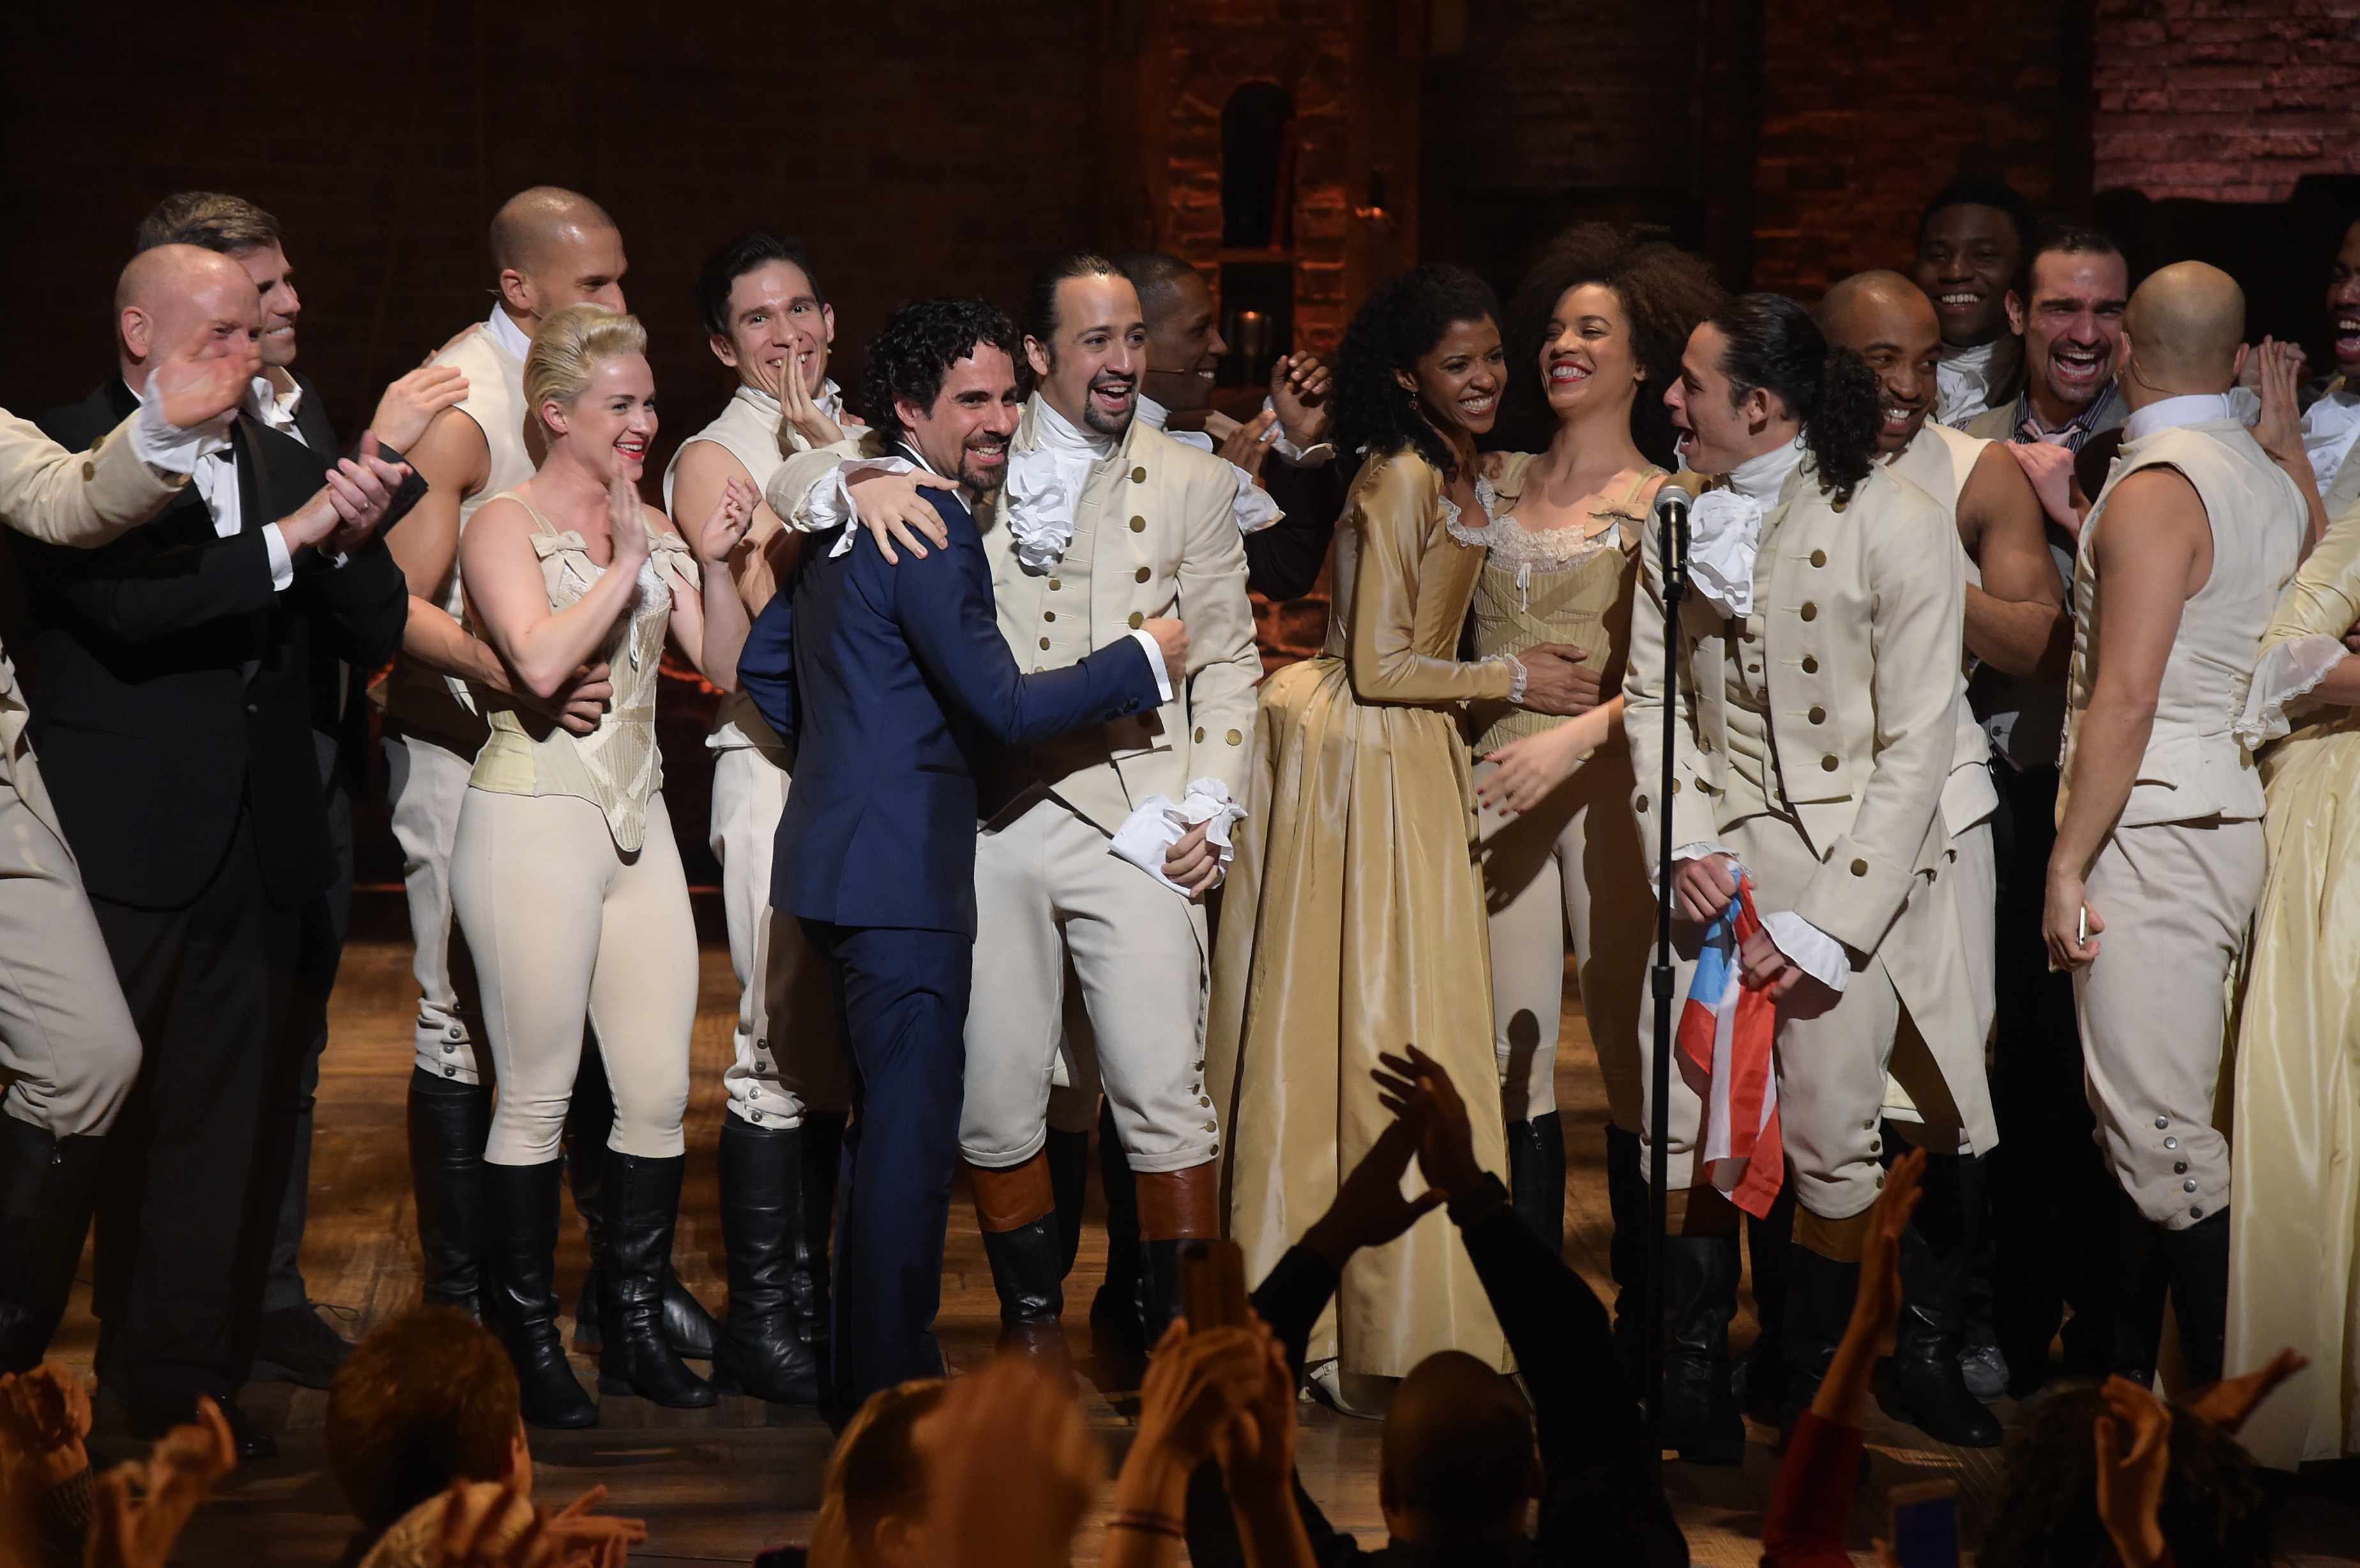 """NEW YORK, NY - FEBRUARY 15:  Music director Alex Lacamoire and actor, composer Lin-Manuel Miranda and cast of """"Hamilton"""" celebrate on stage the receiving of GRAMMY award after """"Hamilton"""" GRAMMY performance for The 58th GRAMMY Awards at Richard Rodgers Theater on February 15, 2016 in New York City.  (Photo by Theo Wargo/Getty Images)  Getty, TL"""